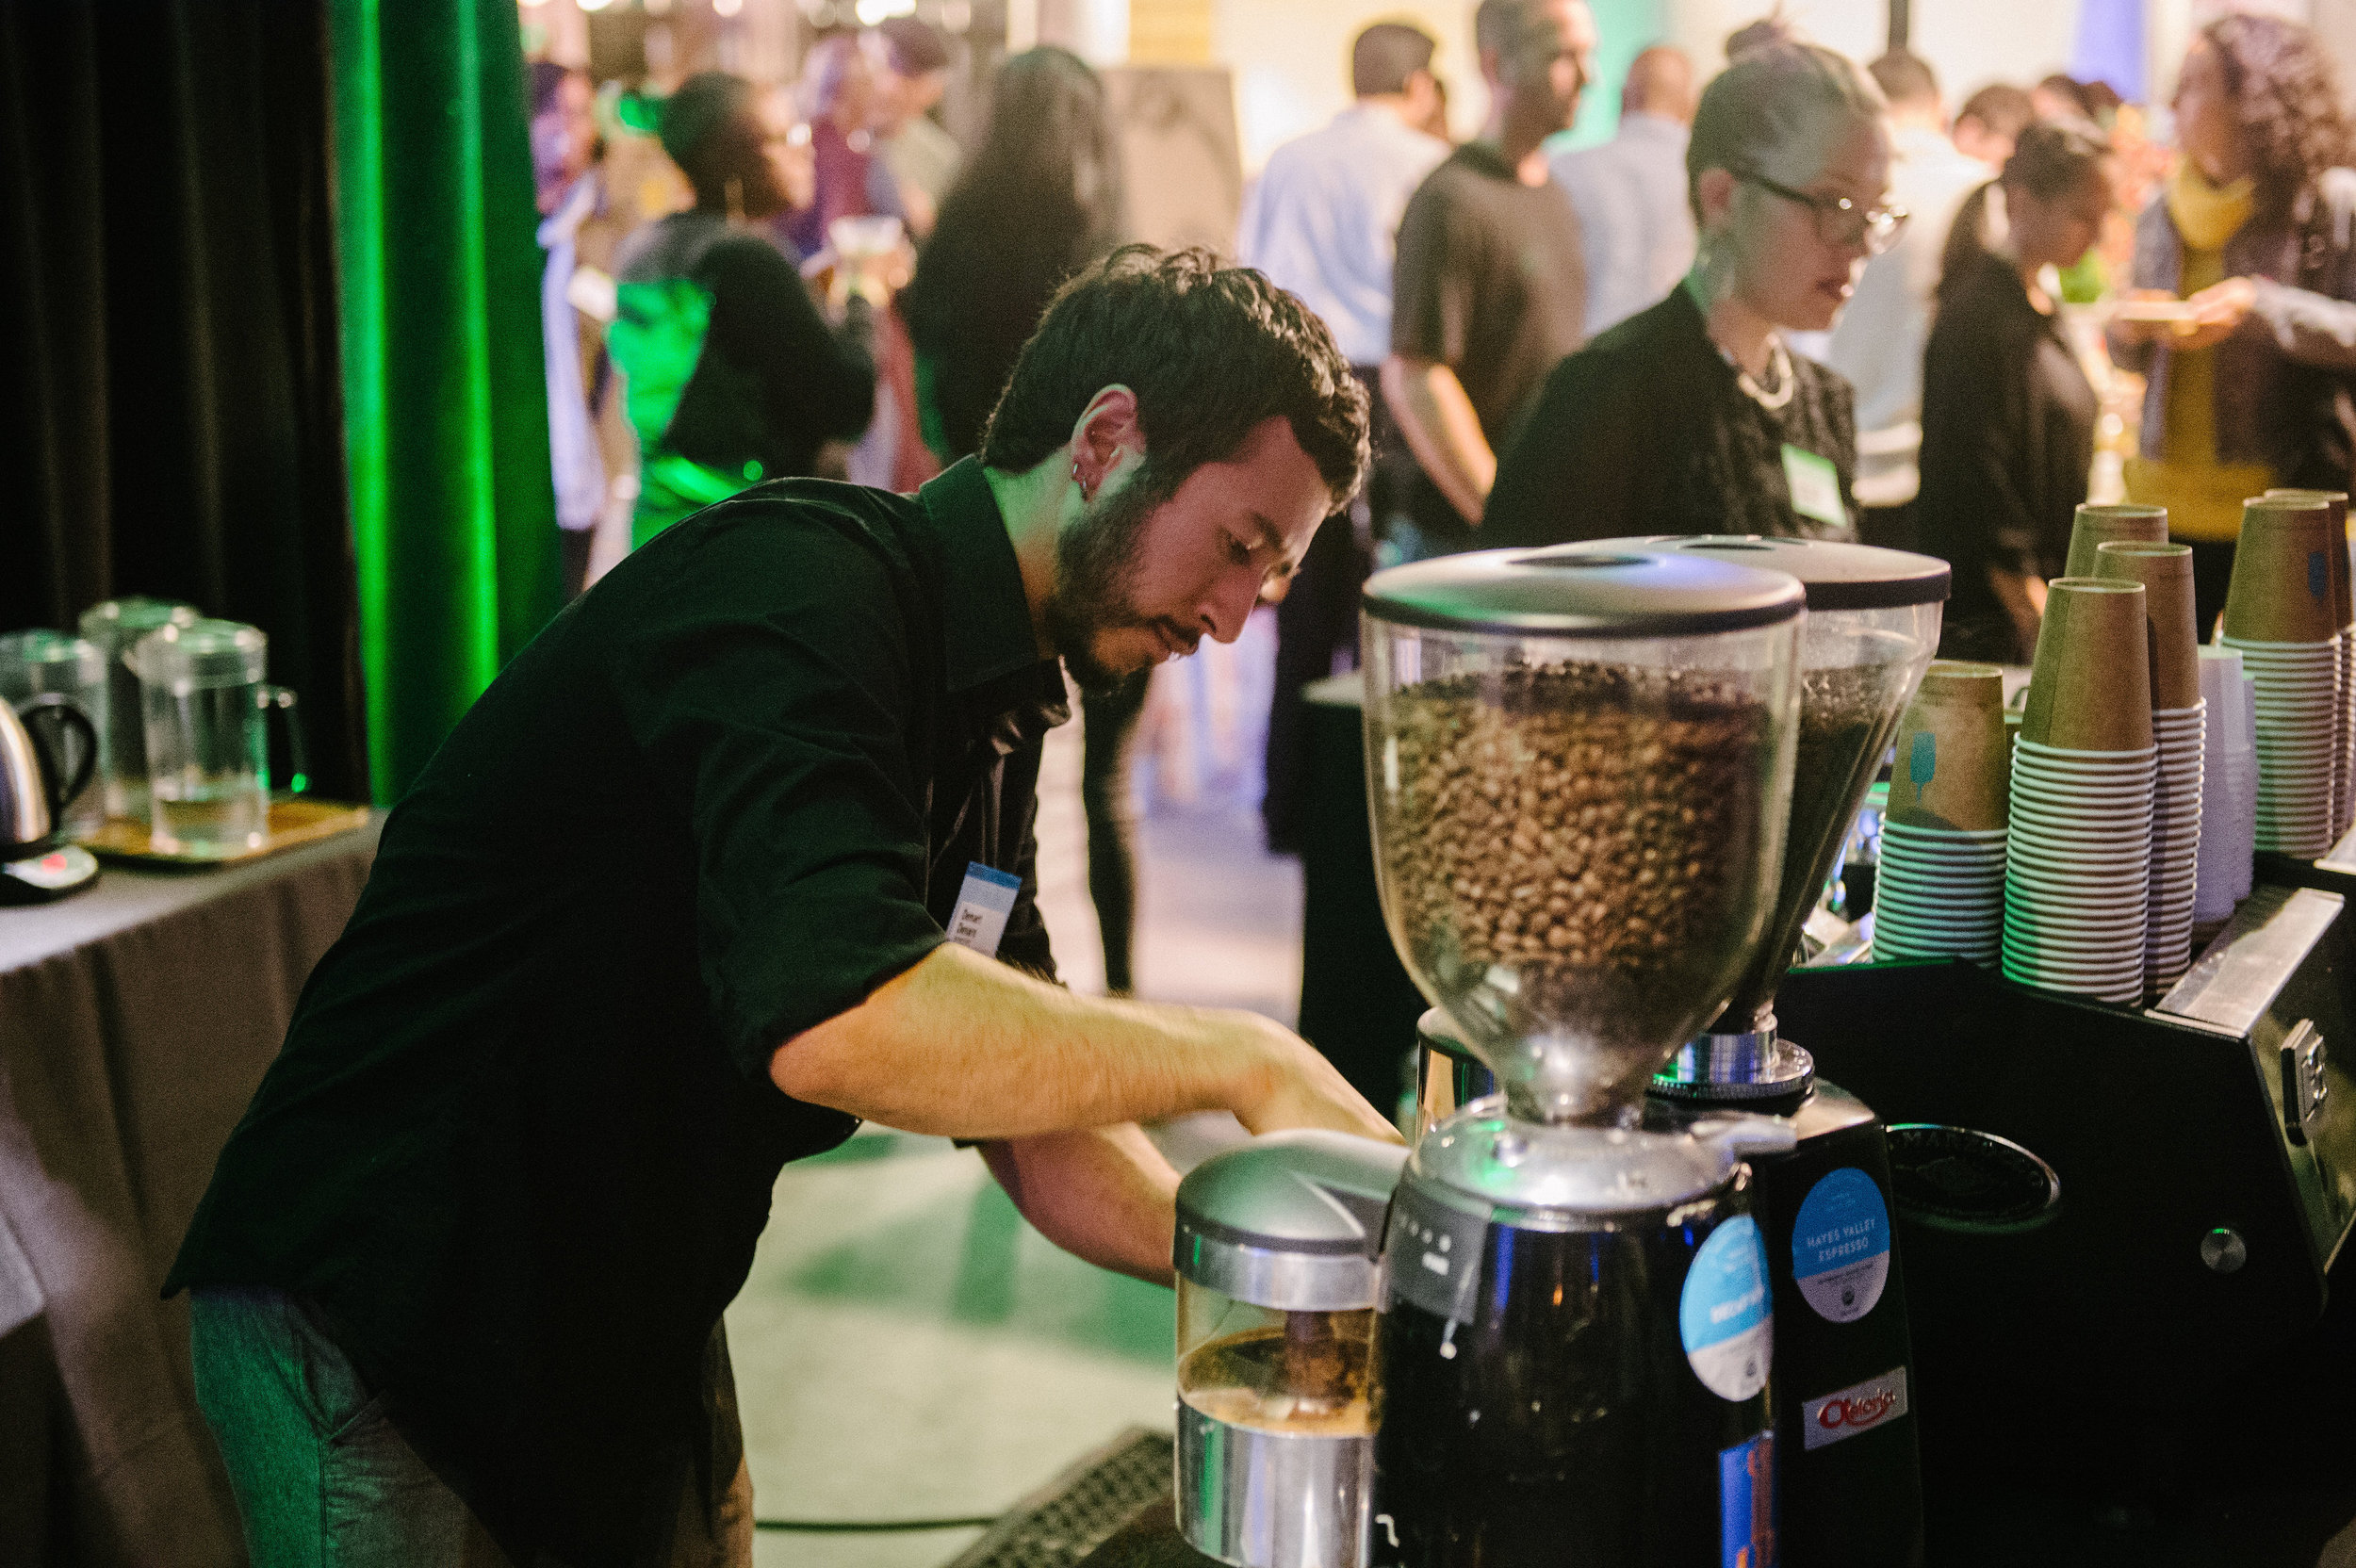 Blue Bottle Coffee at our 2014 ICA LIVE event.